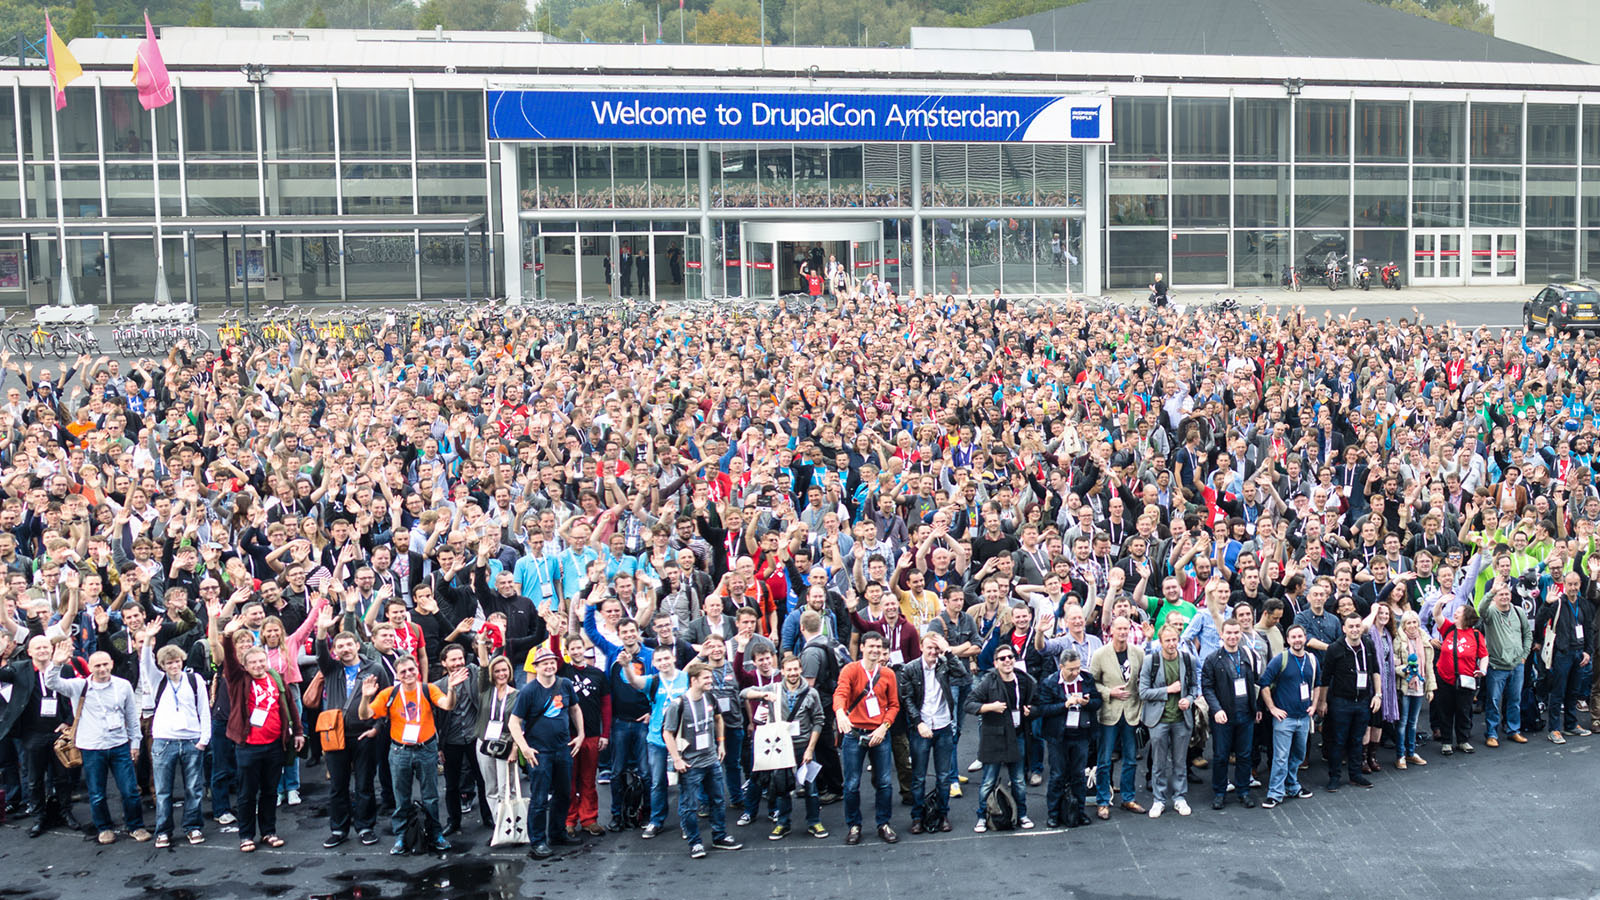 Thousands of drupal developers and users pose for a photograph outside of the RAI centre in Amsterdam for the 2014 DrupalCon.